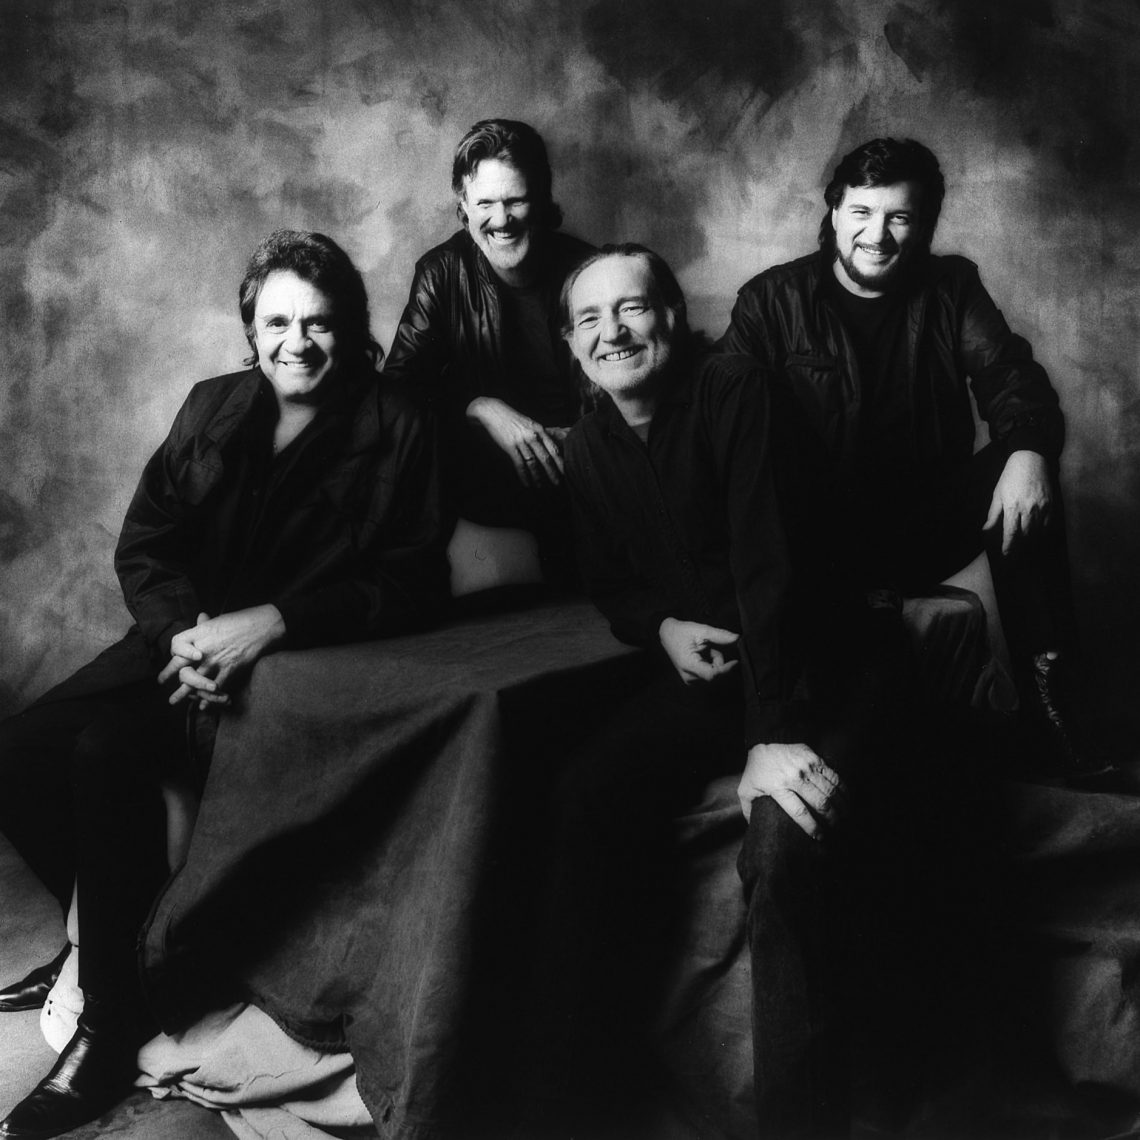 Country music's Mount Rushmore: Johnny Cash, Kristofferson, Willie Nelson and Waylon Jennings (Photo by  Jim McGuire)